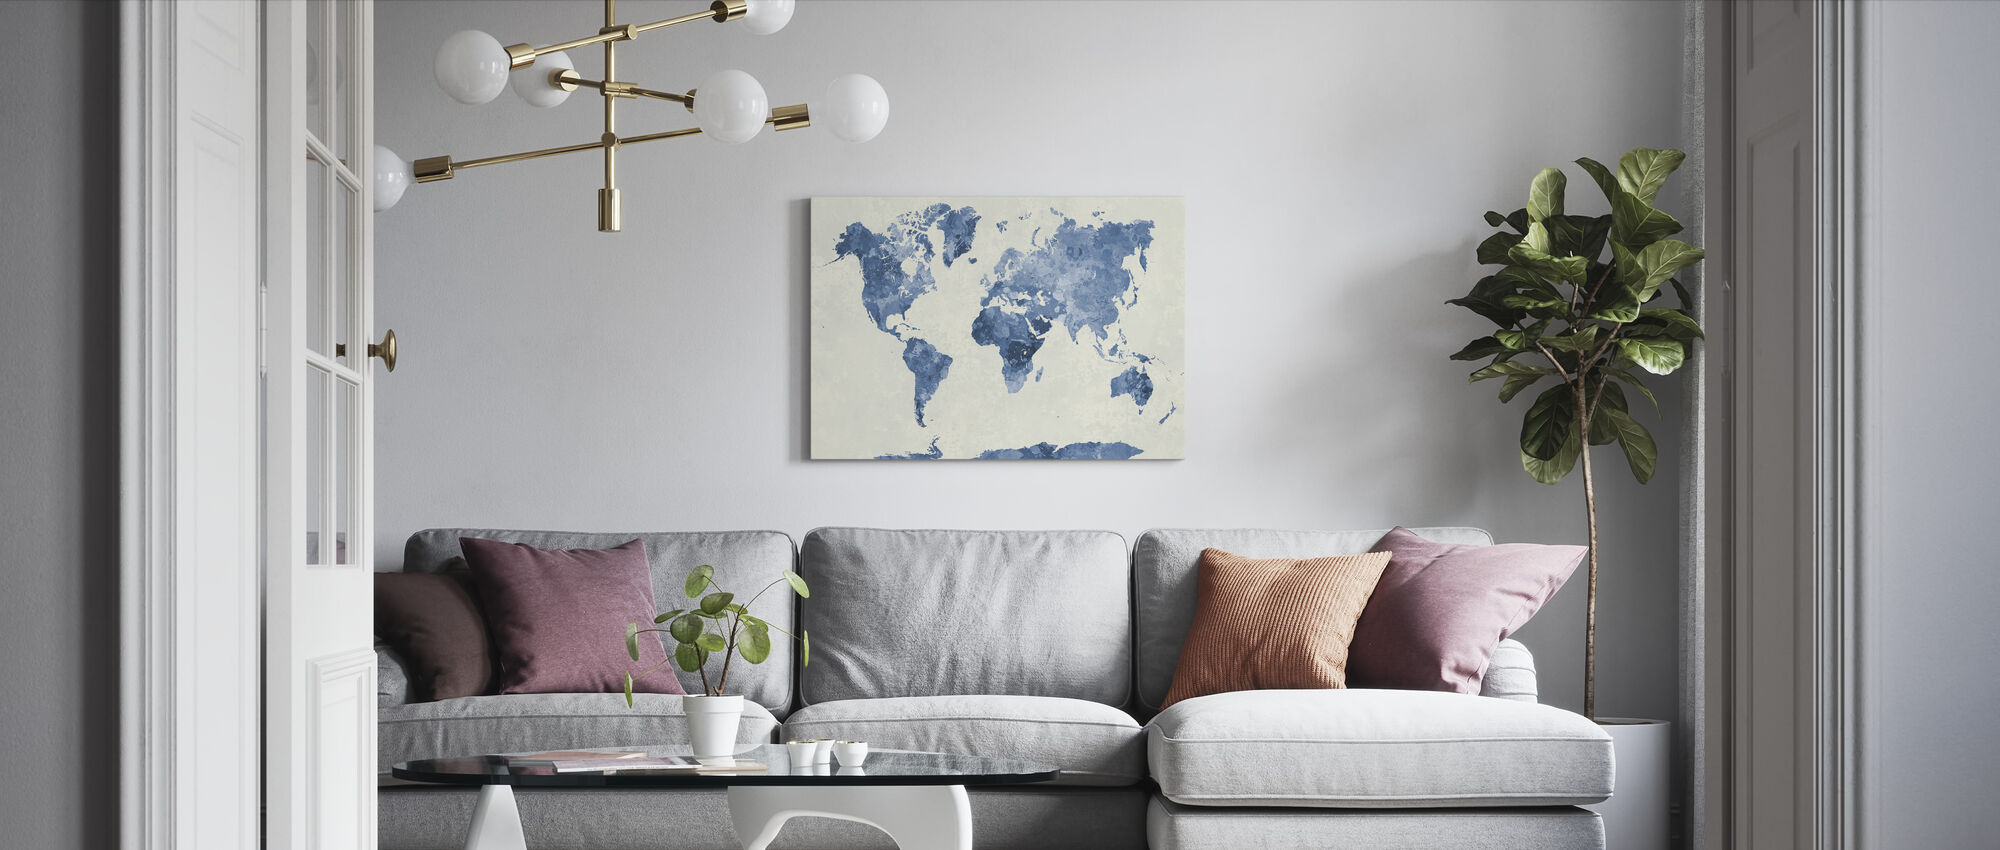 Blue World in Watercolor - Canvas print - Living Room